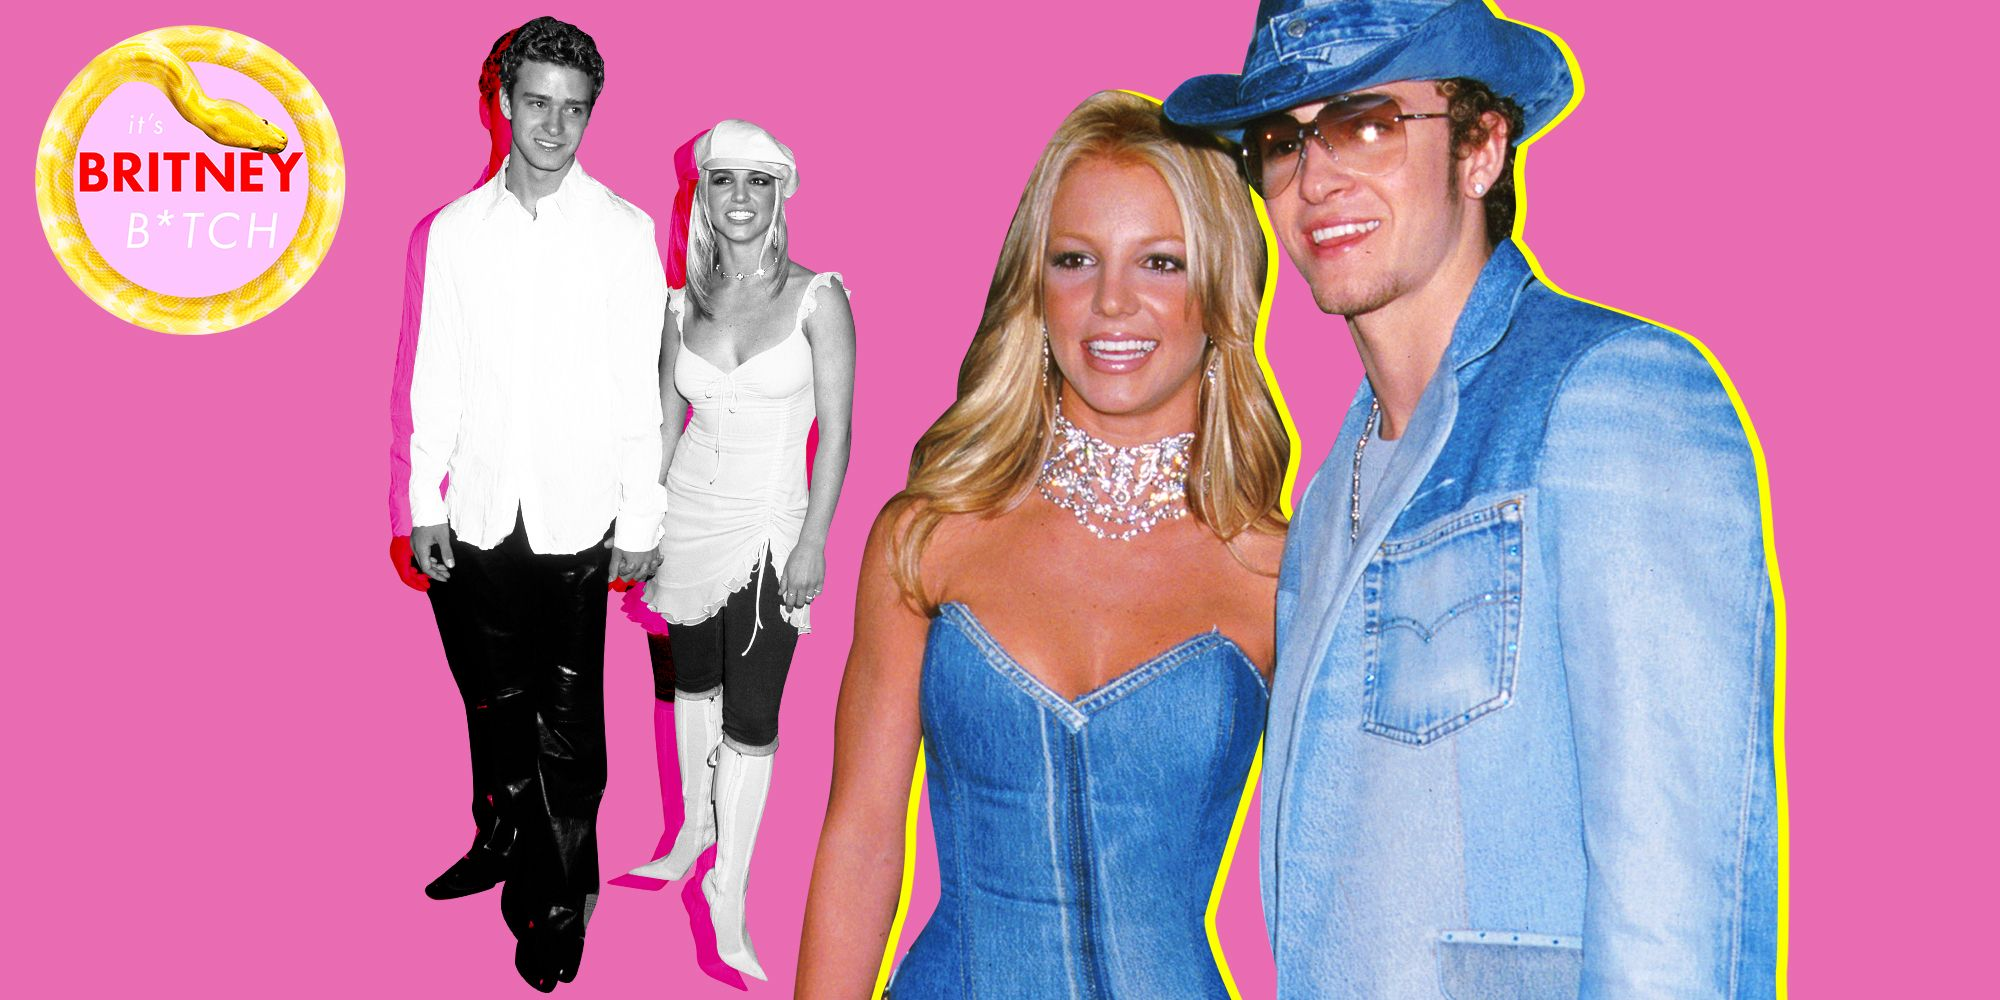 Ill Never Forgive Justin Timberlake for How He Treated Britney Spears